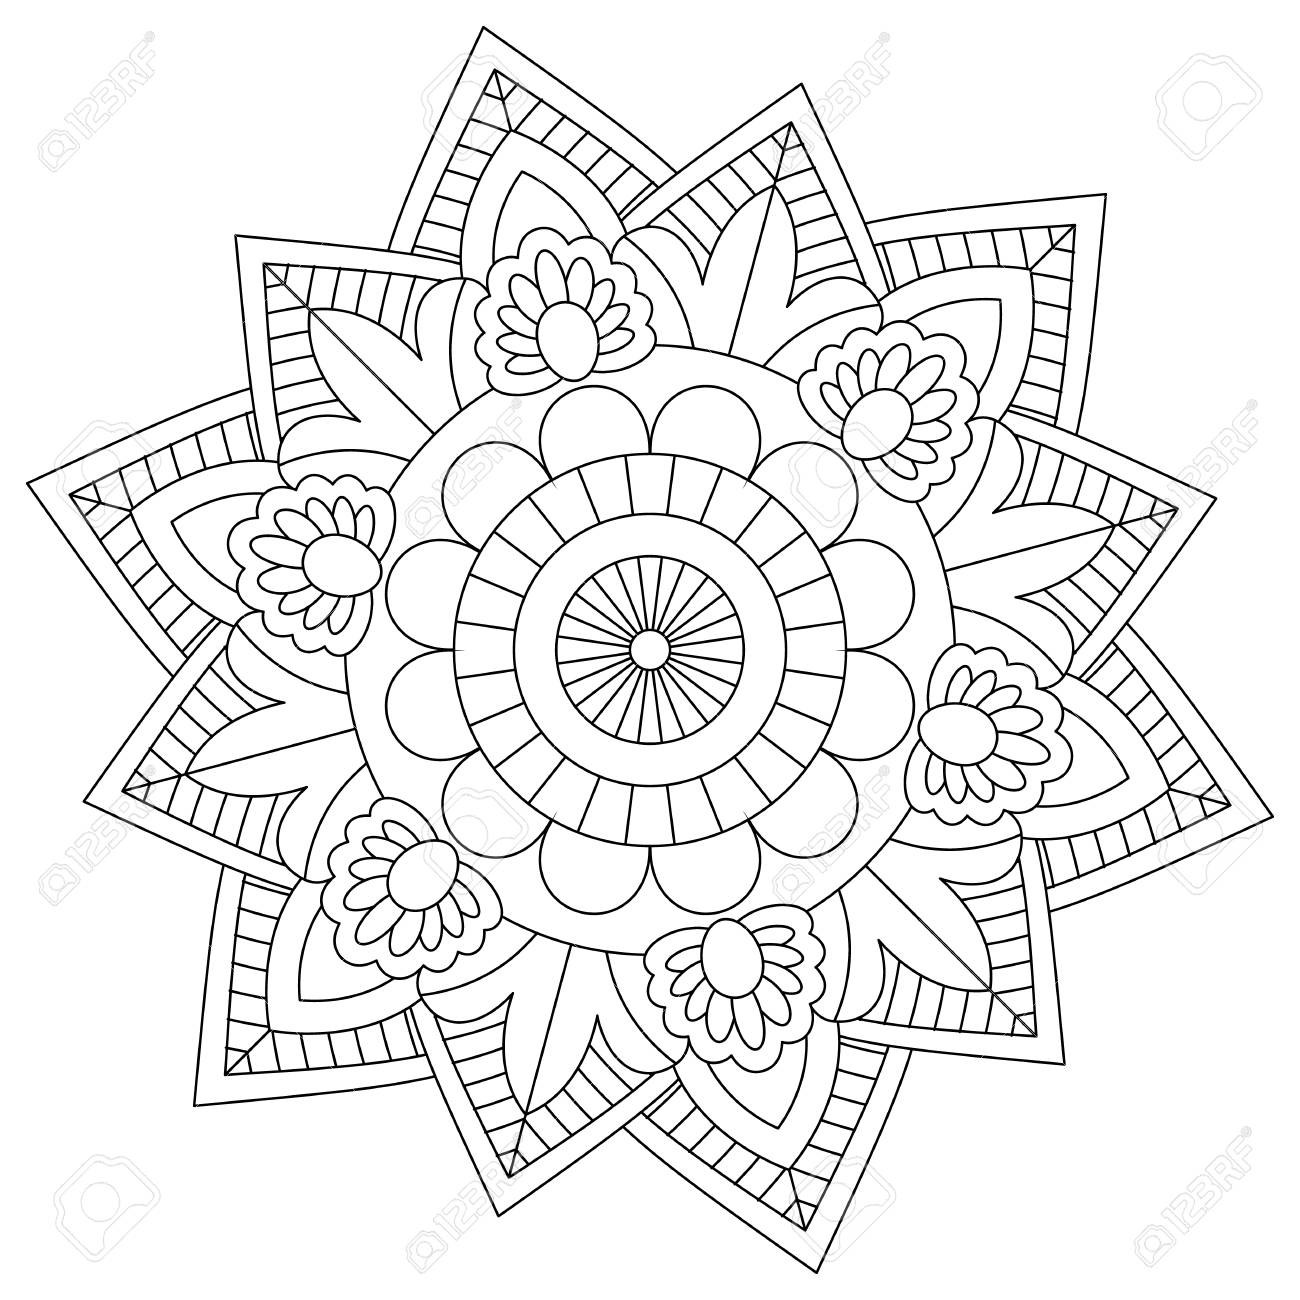 - Flower Mandala For Coloring Pages Royalty Free Cliparts, Vectors